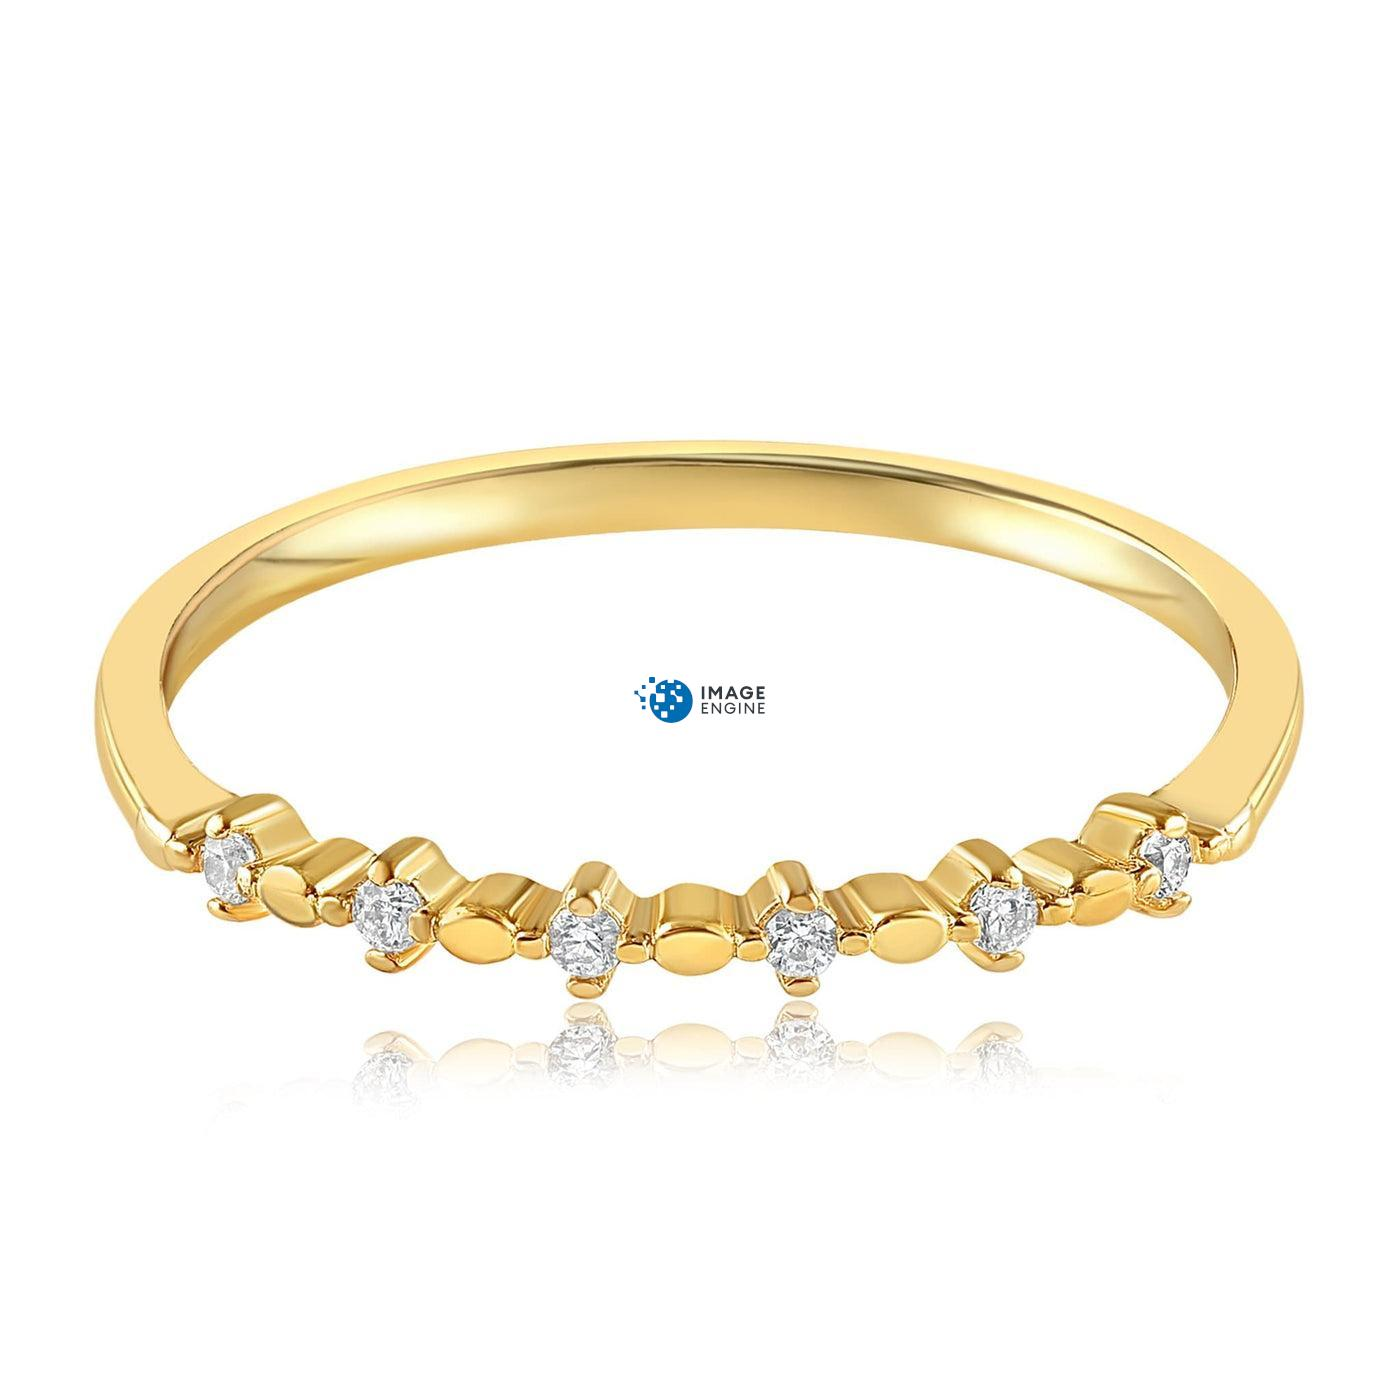 Nicolette Stackable Ring - Front View Facing Down - 18K Yellow Gold Vermeil